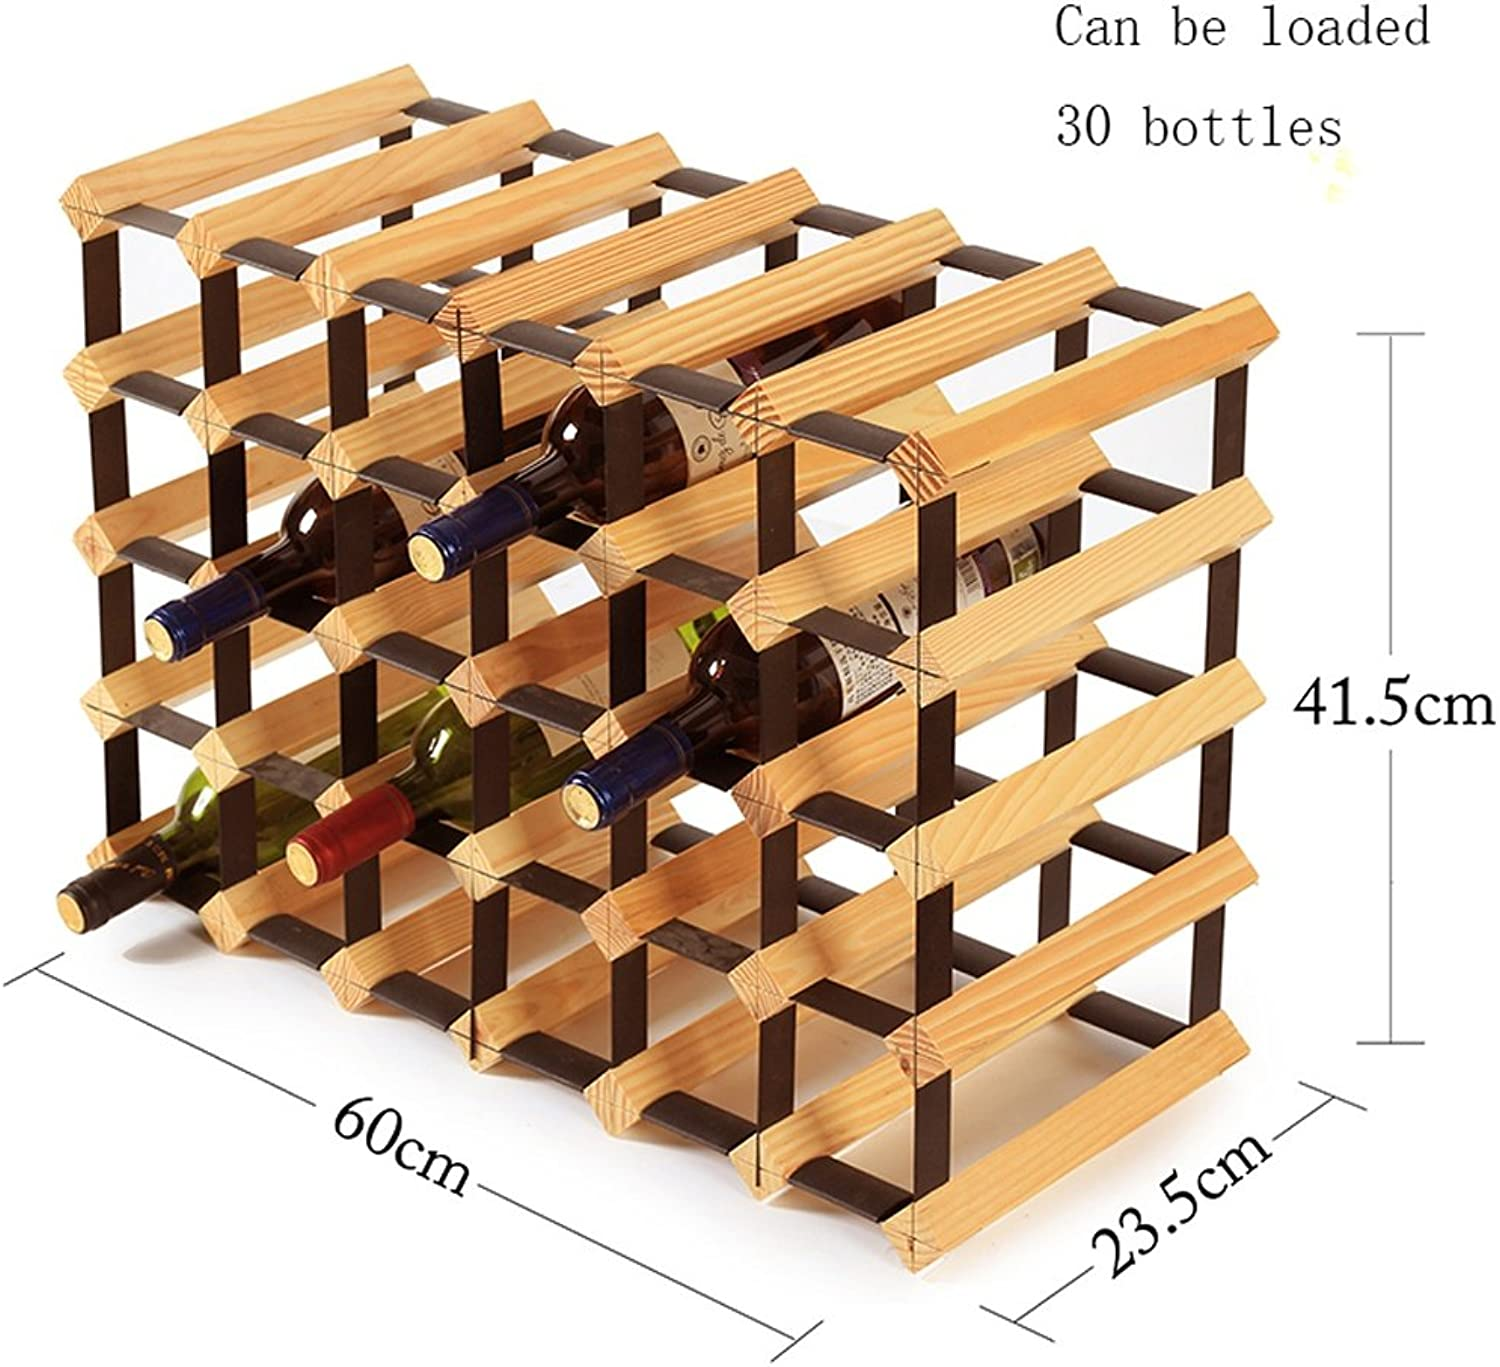 ALUA- Wine Rack Durable Convenient and Fast Red Wine Decoration Storage Holder Display Shelves Solid Wood Household Living Room Restaurant Wine Cabinet Wood color (Size   60  23.5  41.5cm)